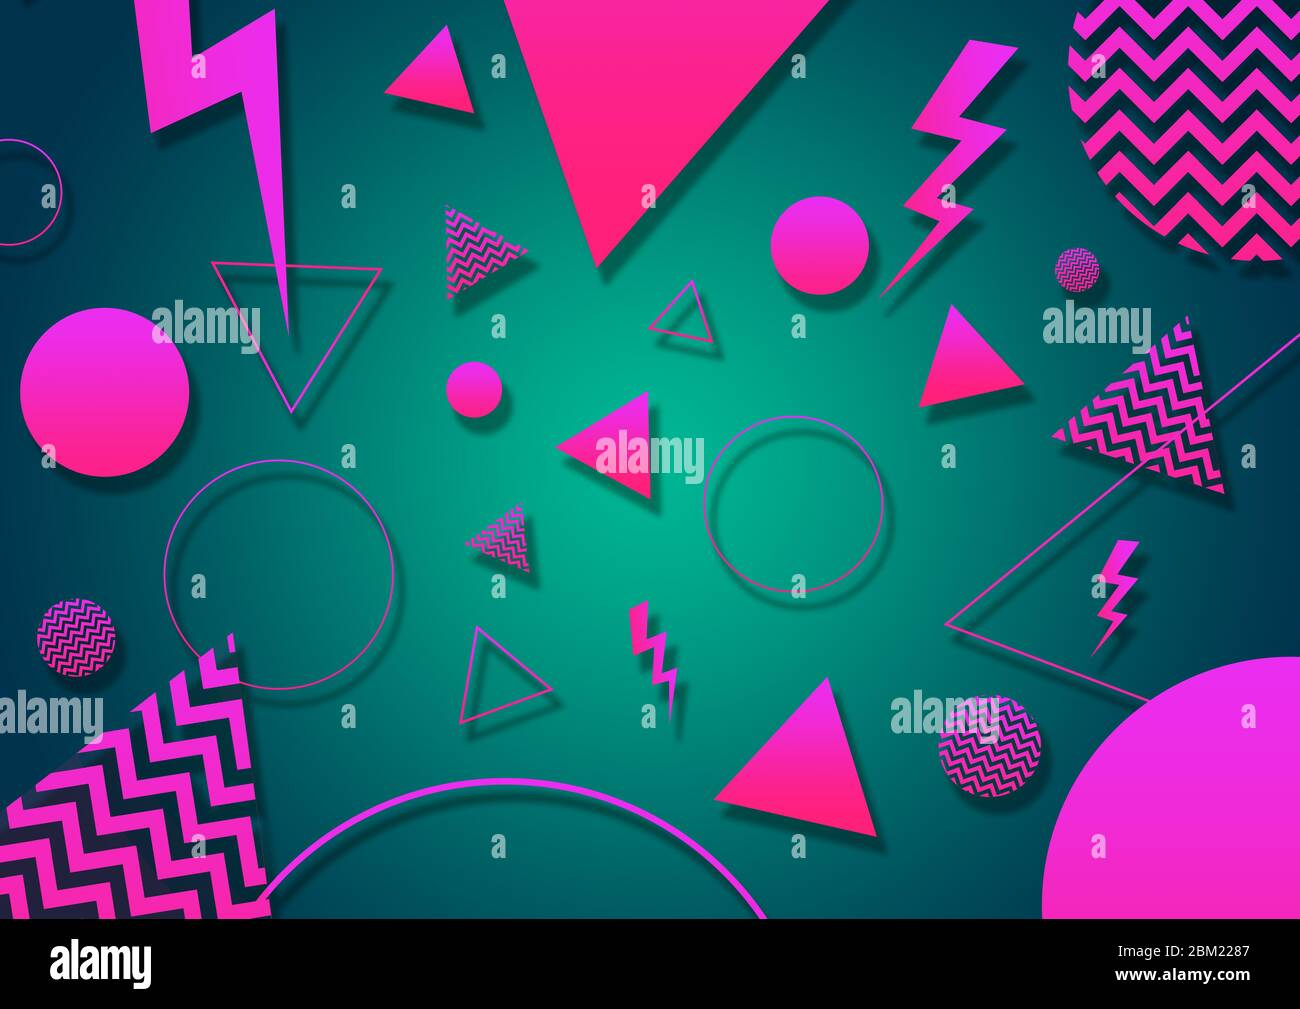 A Green Pink And Coral Retro Vaporwave 90 S Style Random Geometric Shapes With Vibrant Neon Color Palette On A Radial Gradient Background Stock Photo Alamy